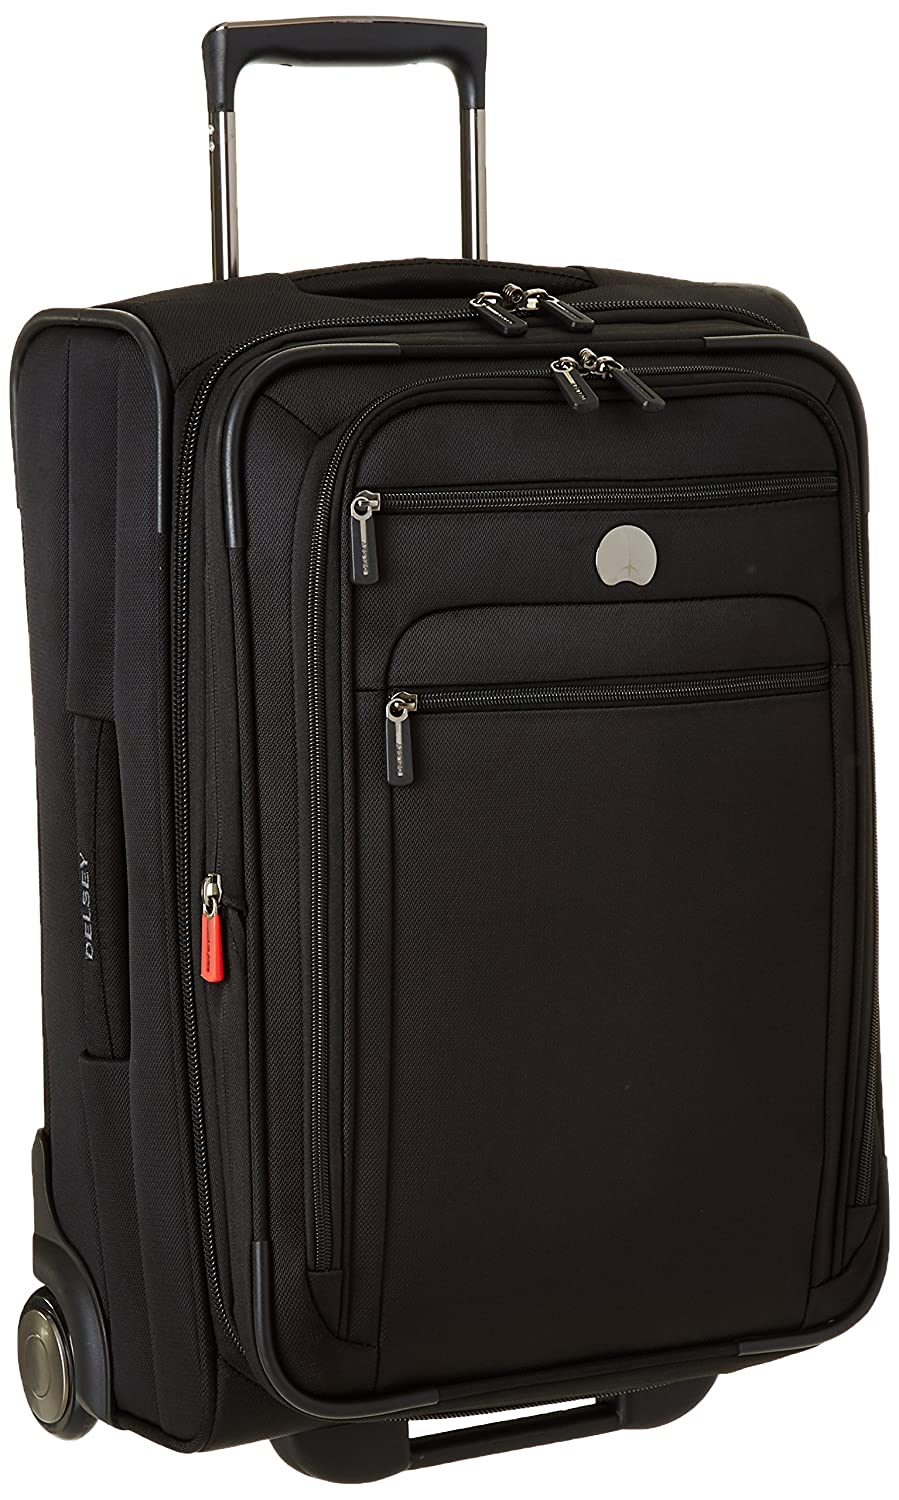 Suitcases from vayparhyiver.cf The right luggage can make the difference between a hectic travel experience and a smooth one. With the suitcases from vayparhyiver.cf, you can stow your personal belongings securely for peace of mind and convenience.